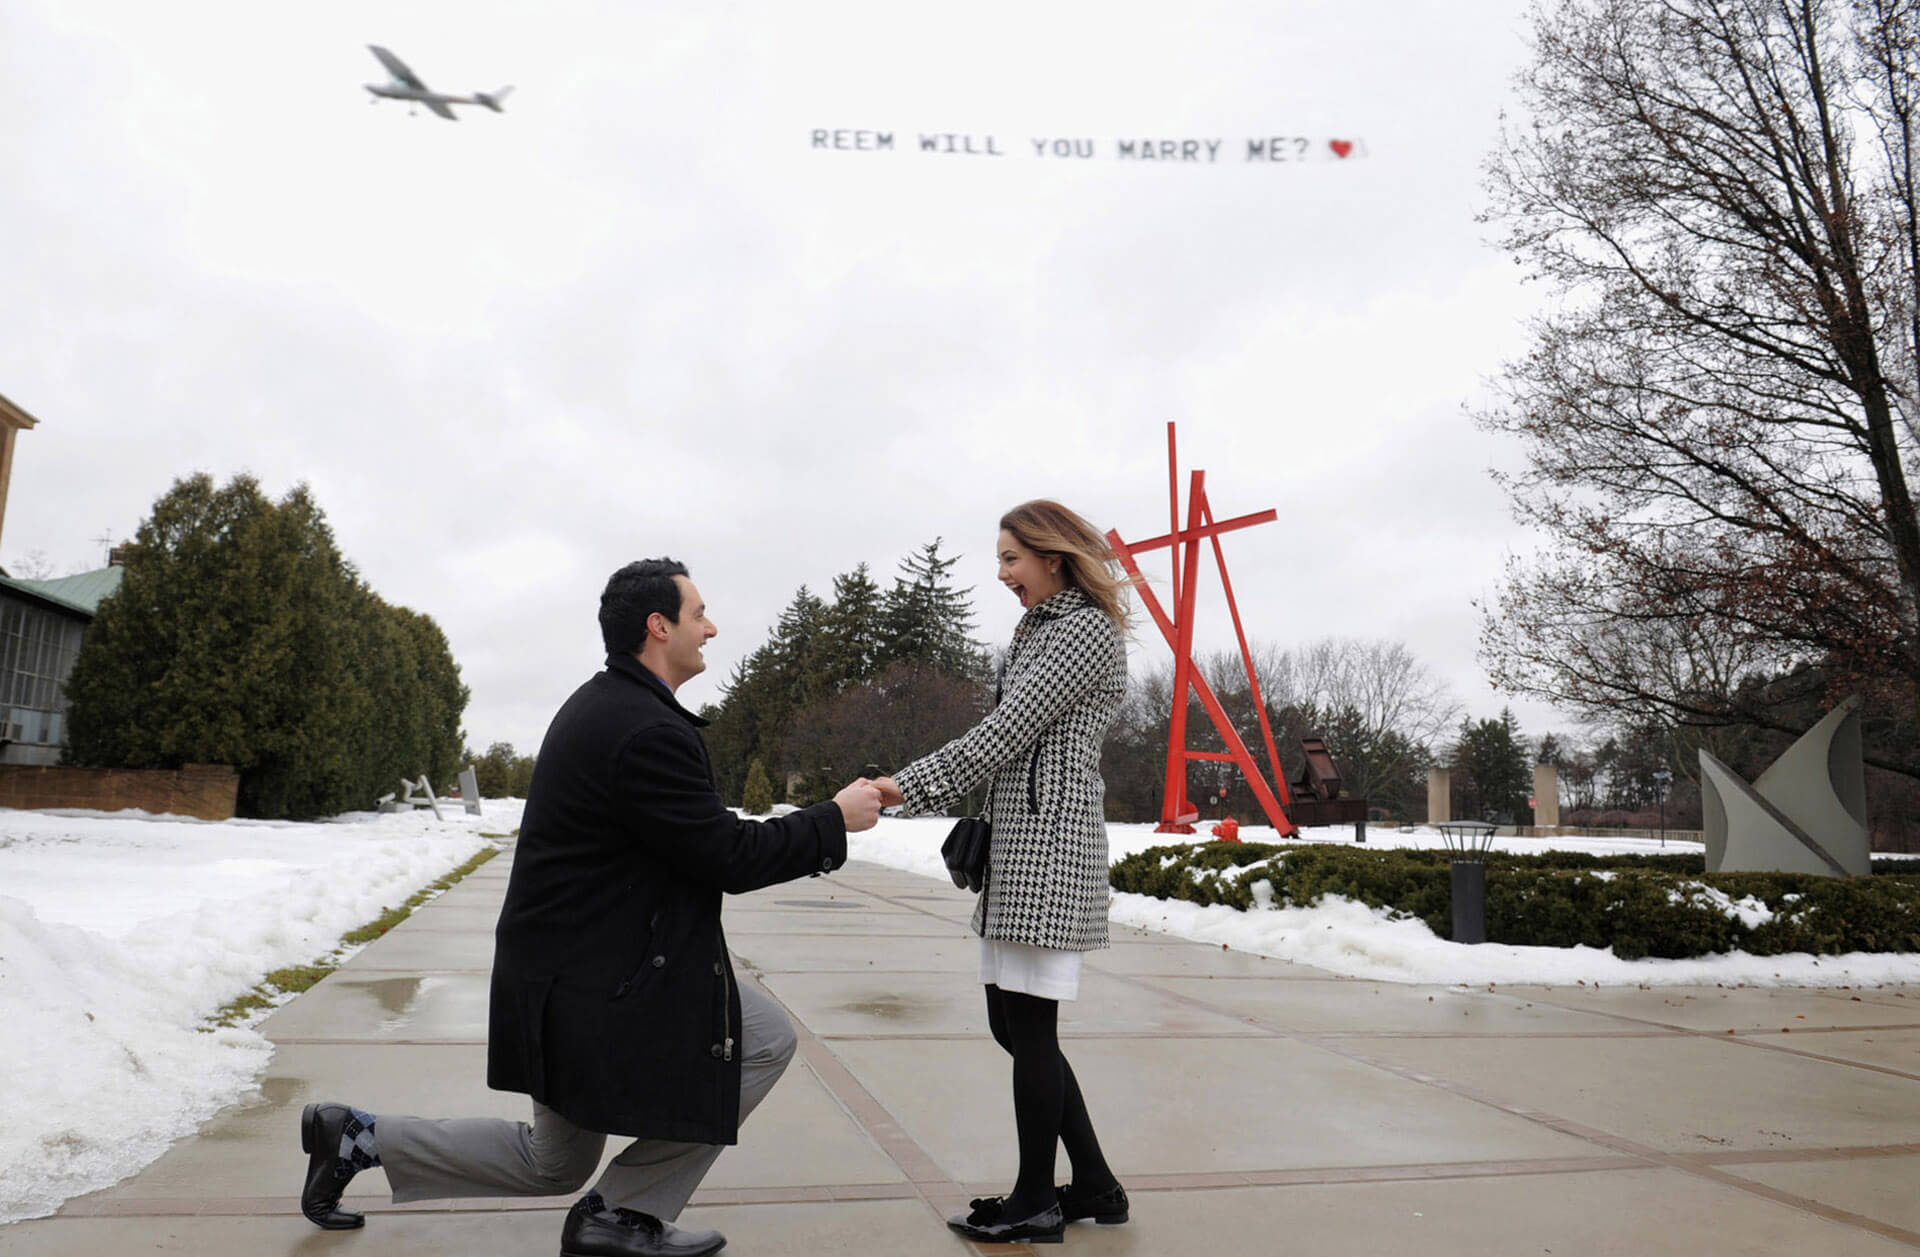 Proposal photography has become very popular in the Metro Detroit area. Just a hint to the fellows doing the asking... don't do it on a Saturday. All the best wedding photographers are out shooting weddings!